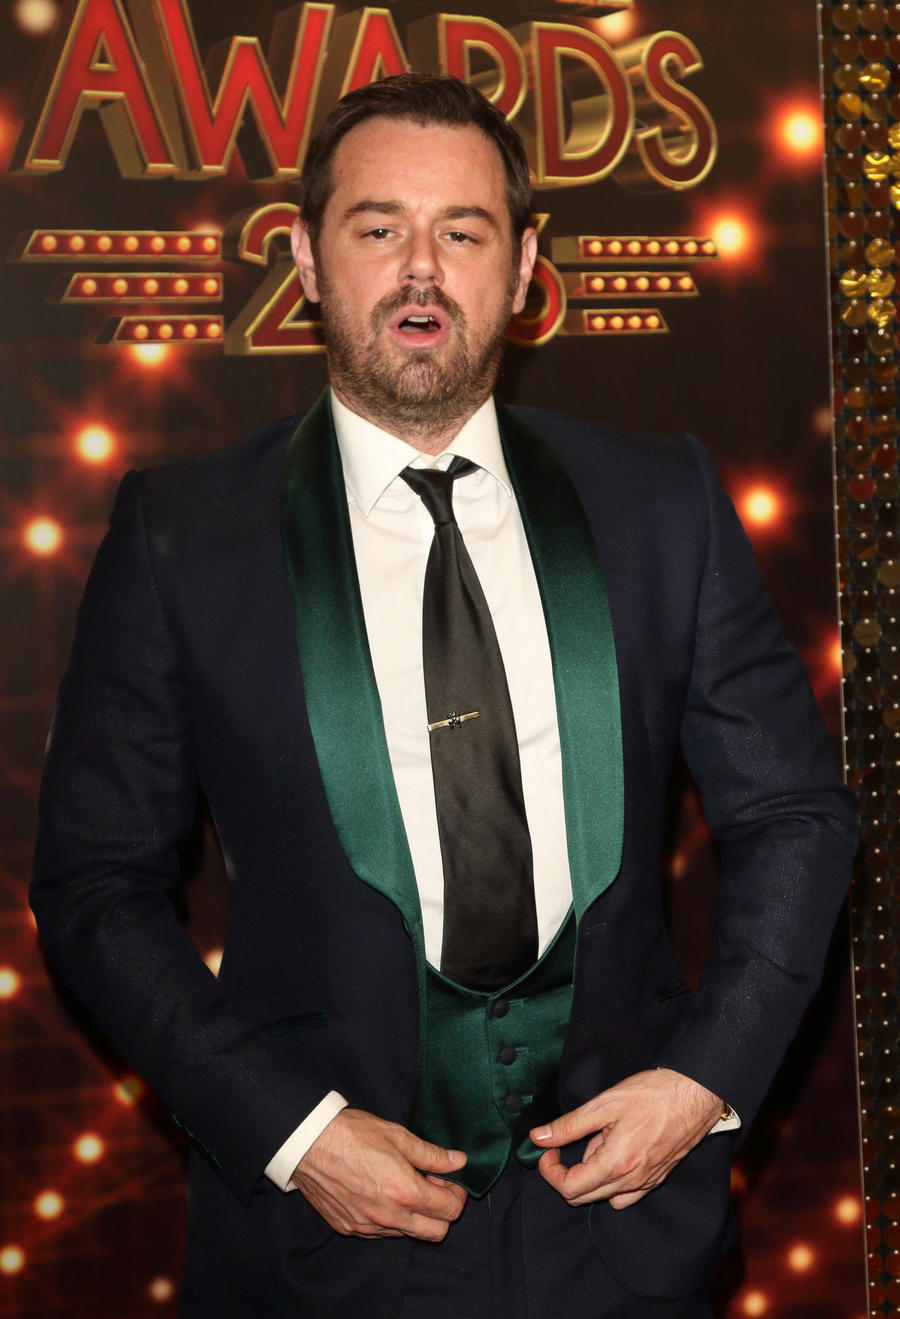 Danny Dyer Discovers Royal Link In Who Do You Think You Are?